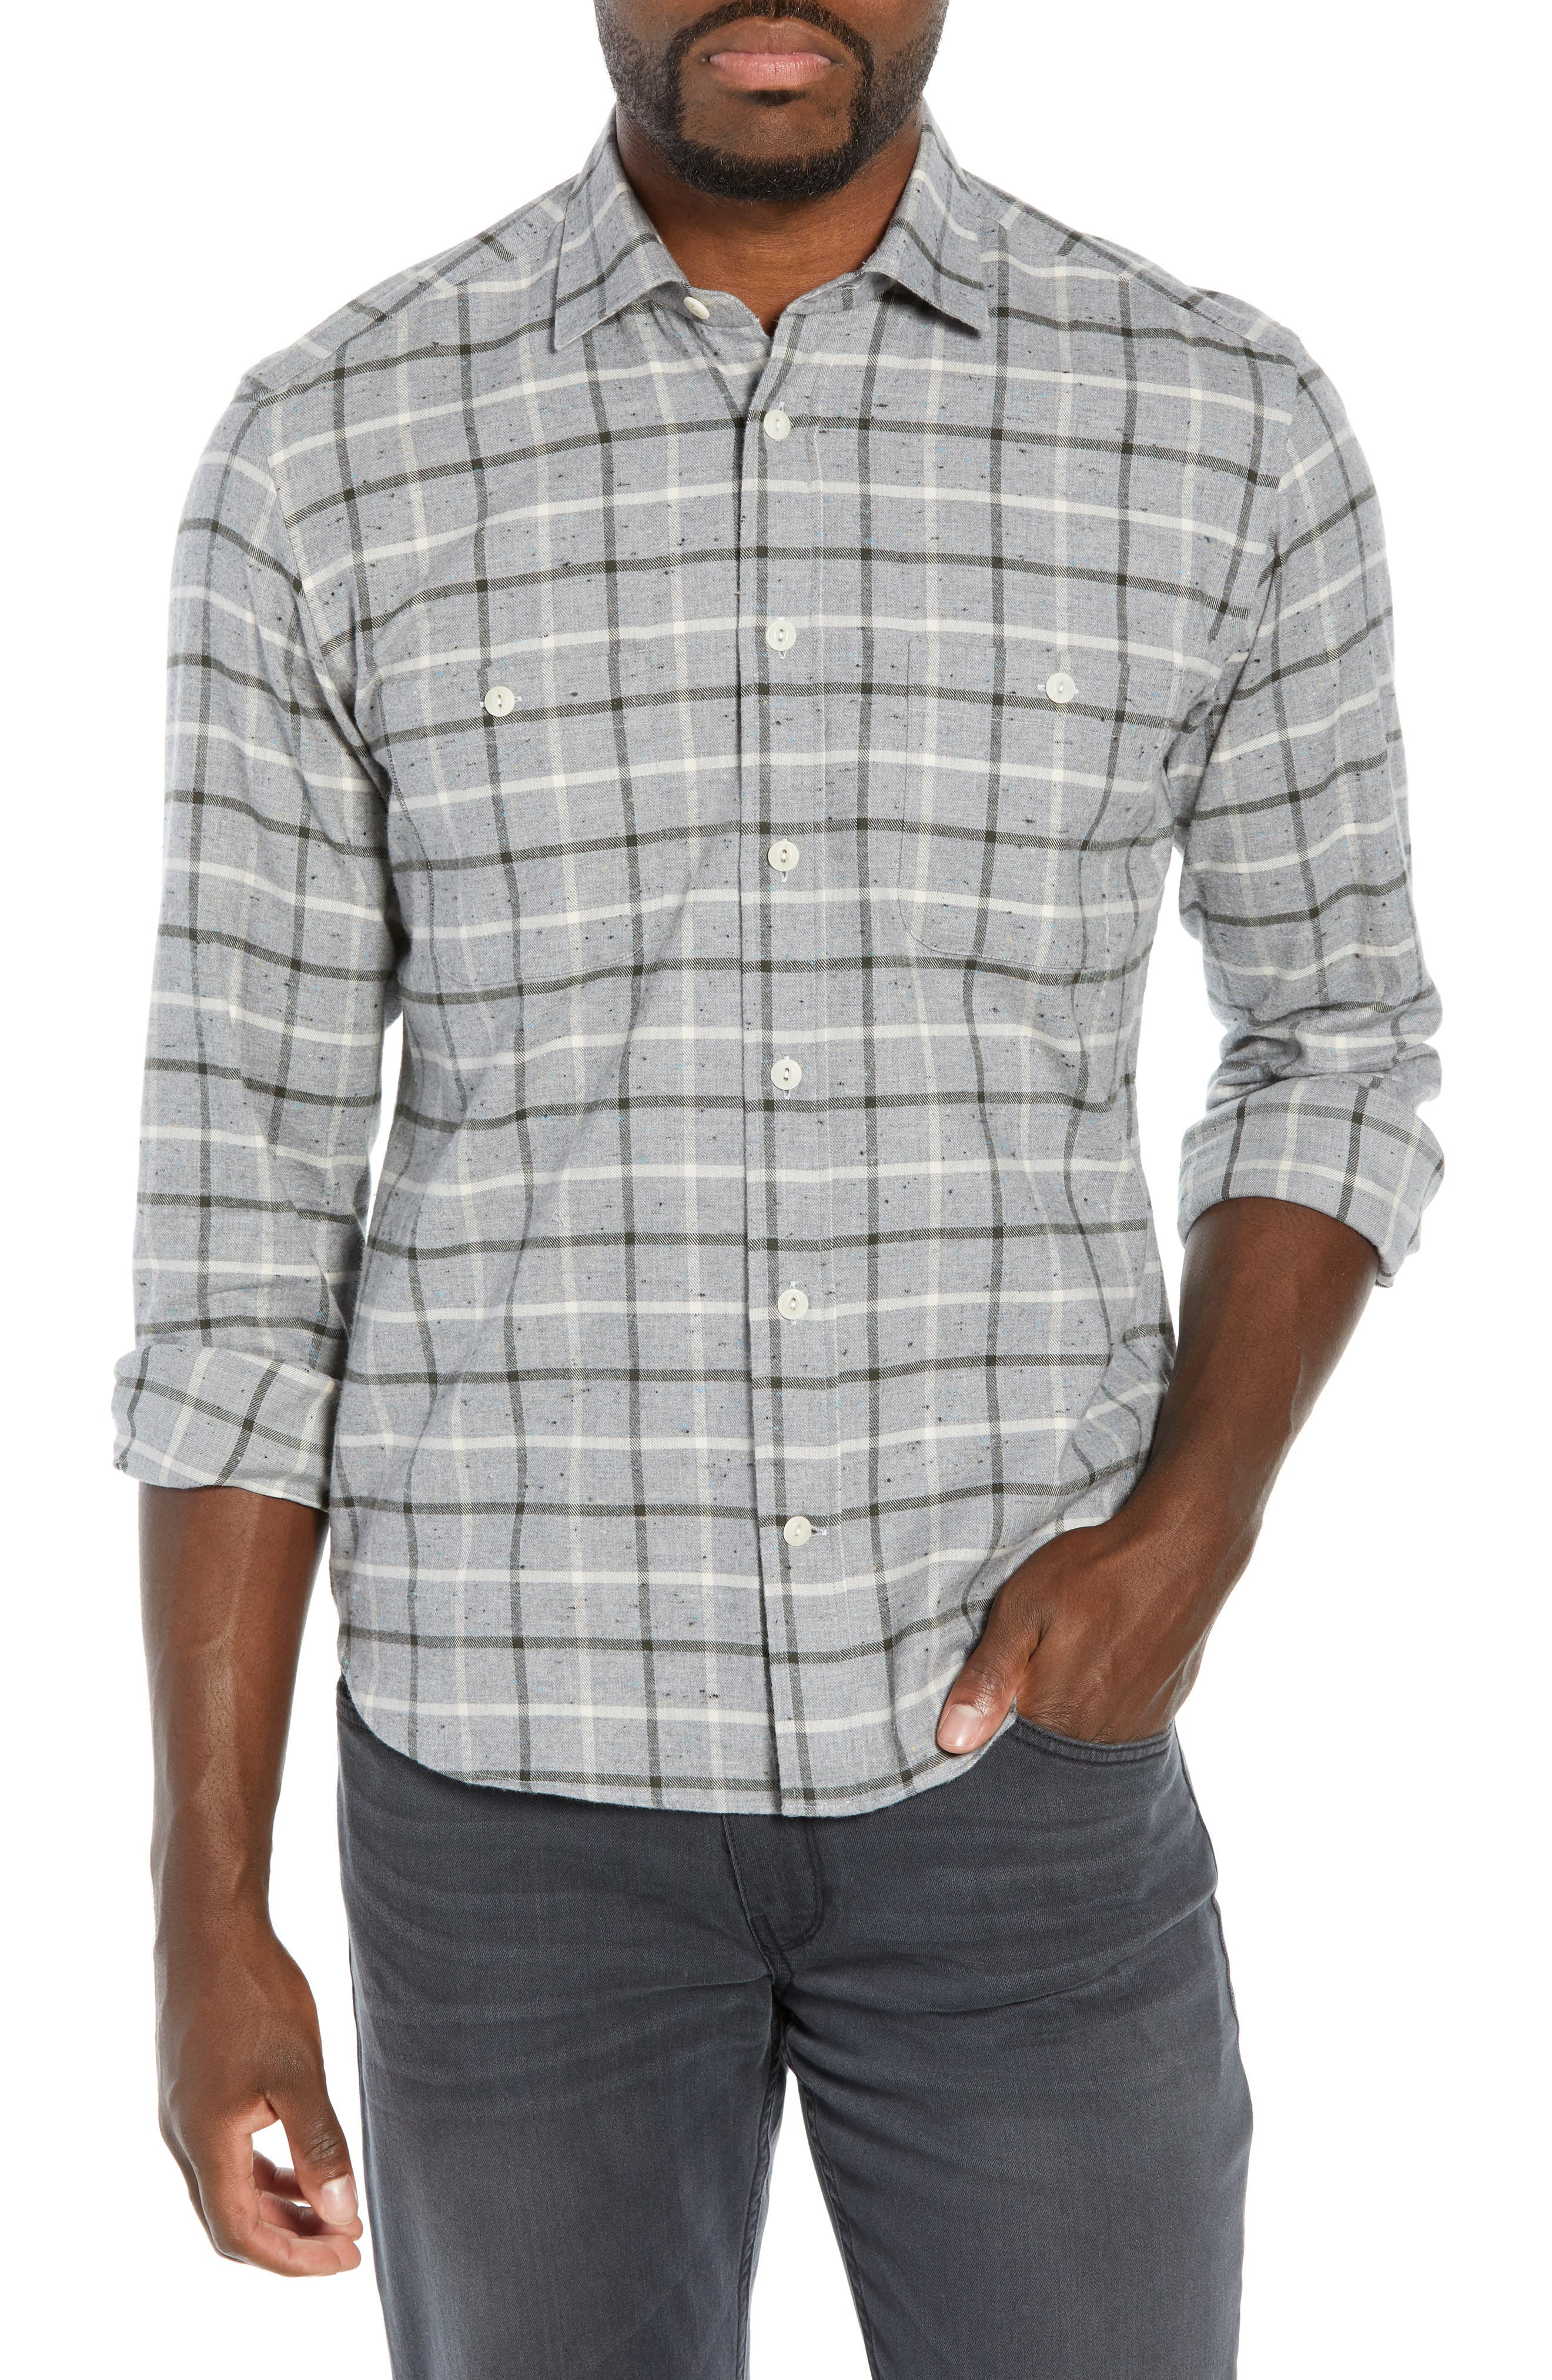 CULTURATA Supersoft Tailored Fit Plaid Sport Shirt in Grey